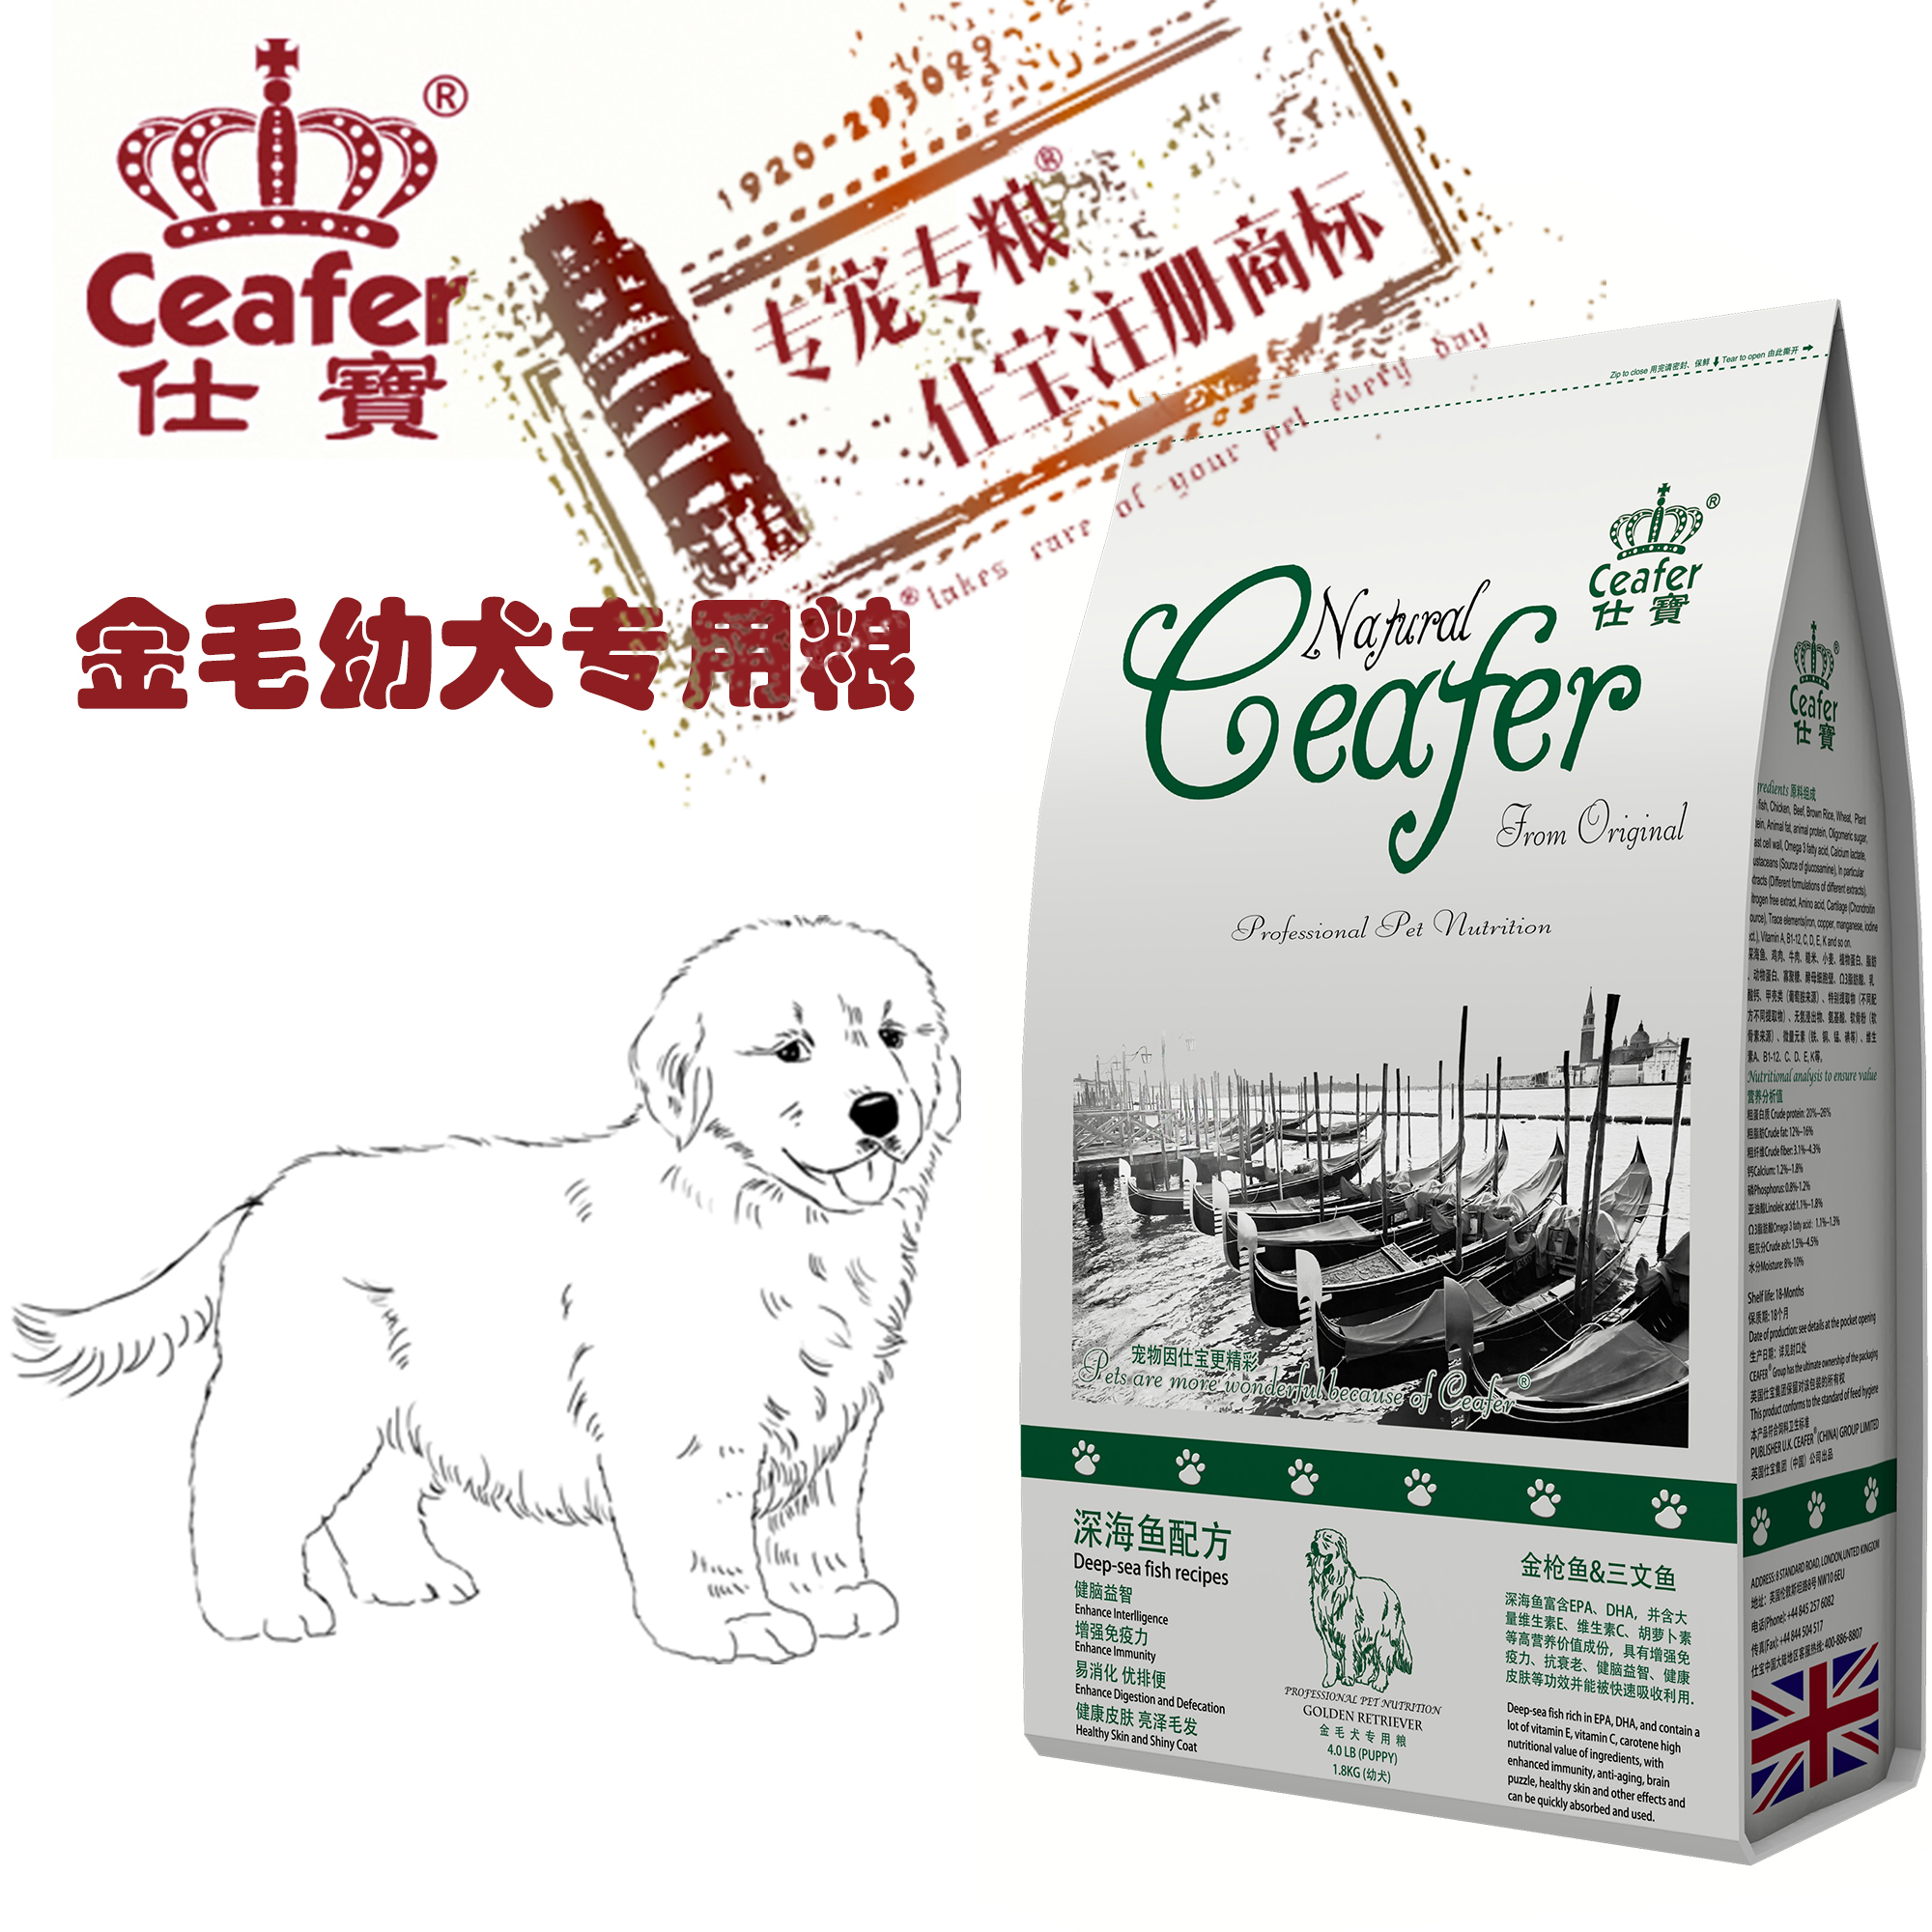 British shi bao deep sea fish adult dog food natural dog food golden retriever golden retriever puppy dog special food 1.8 kg